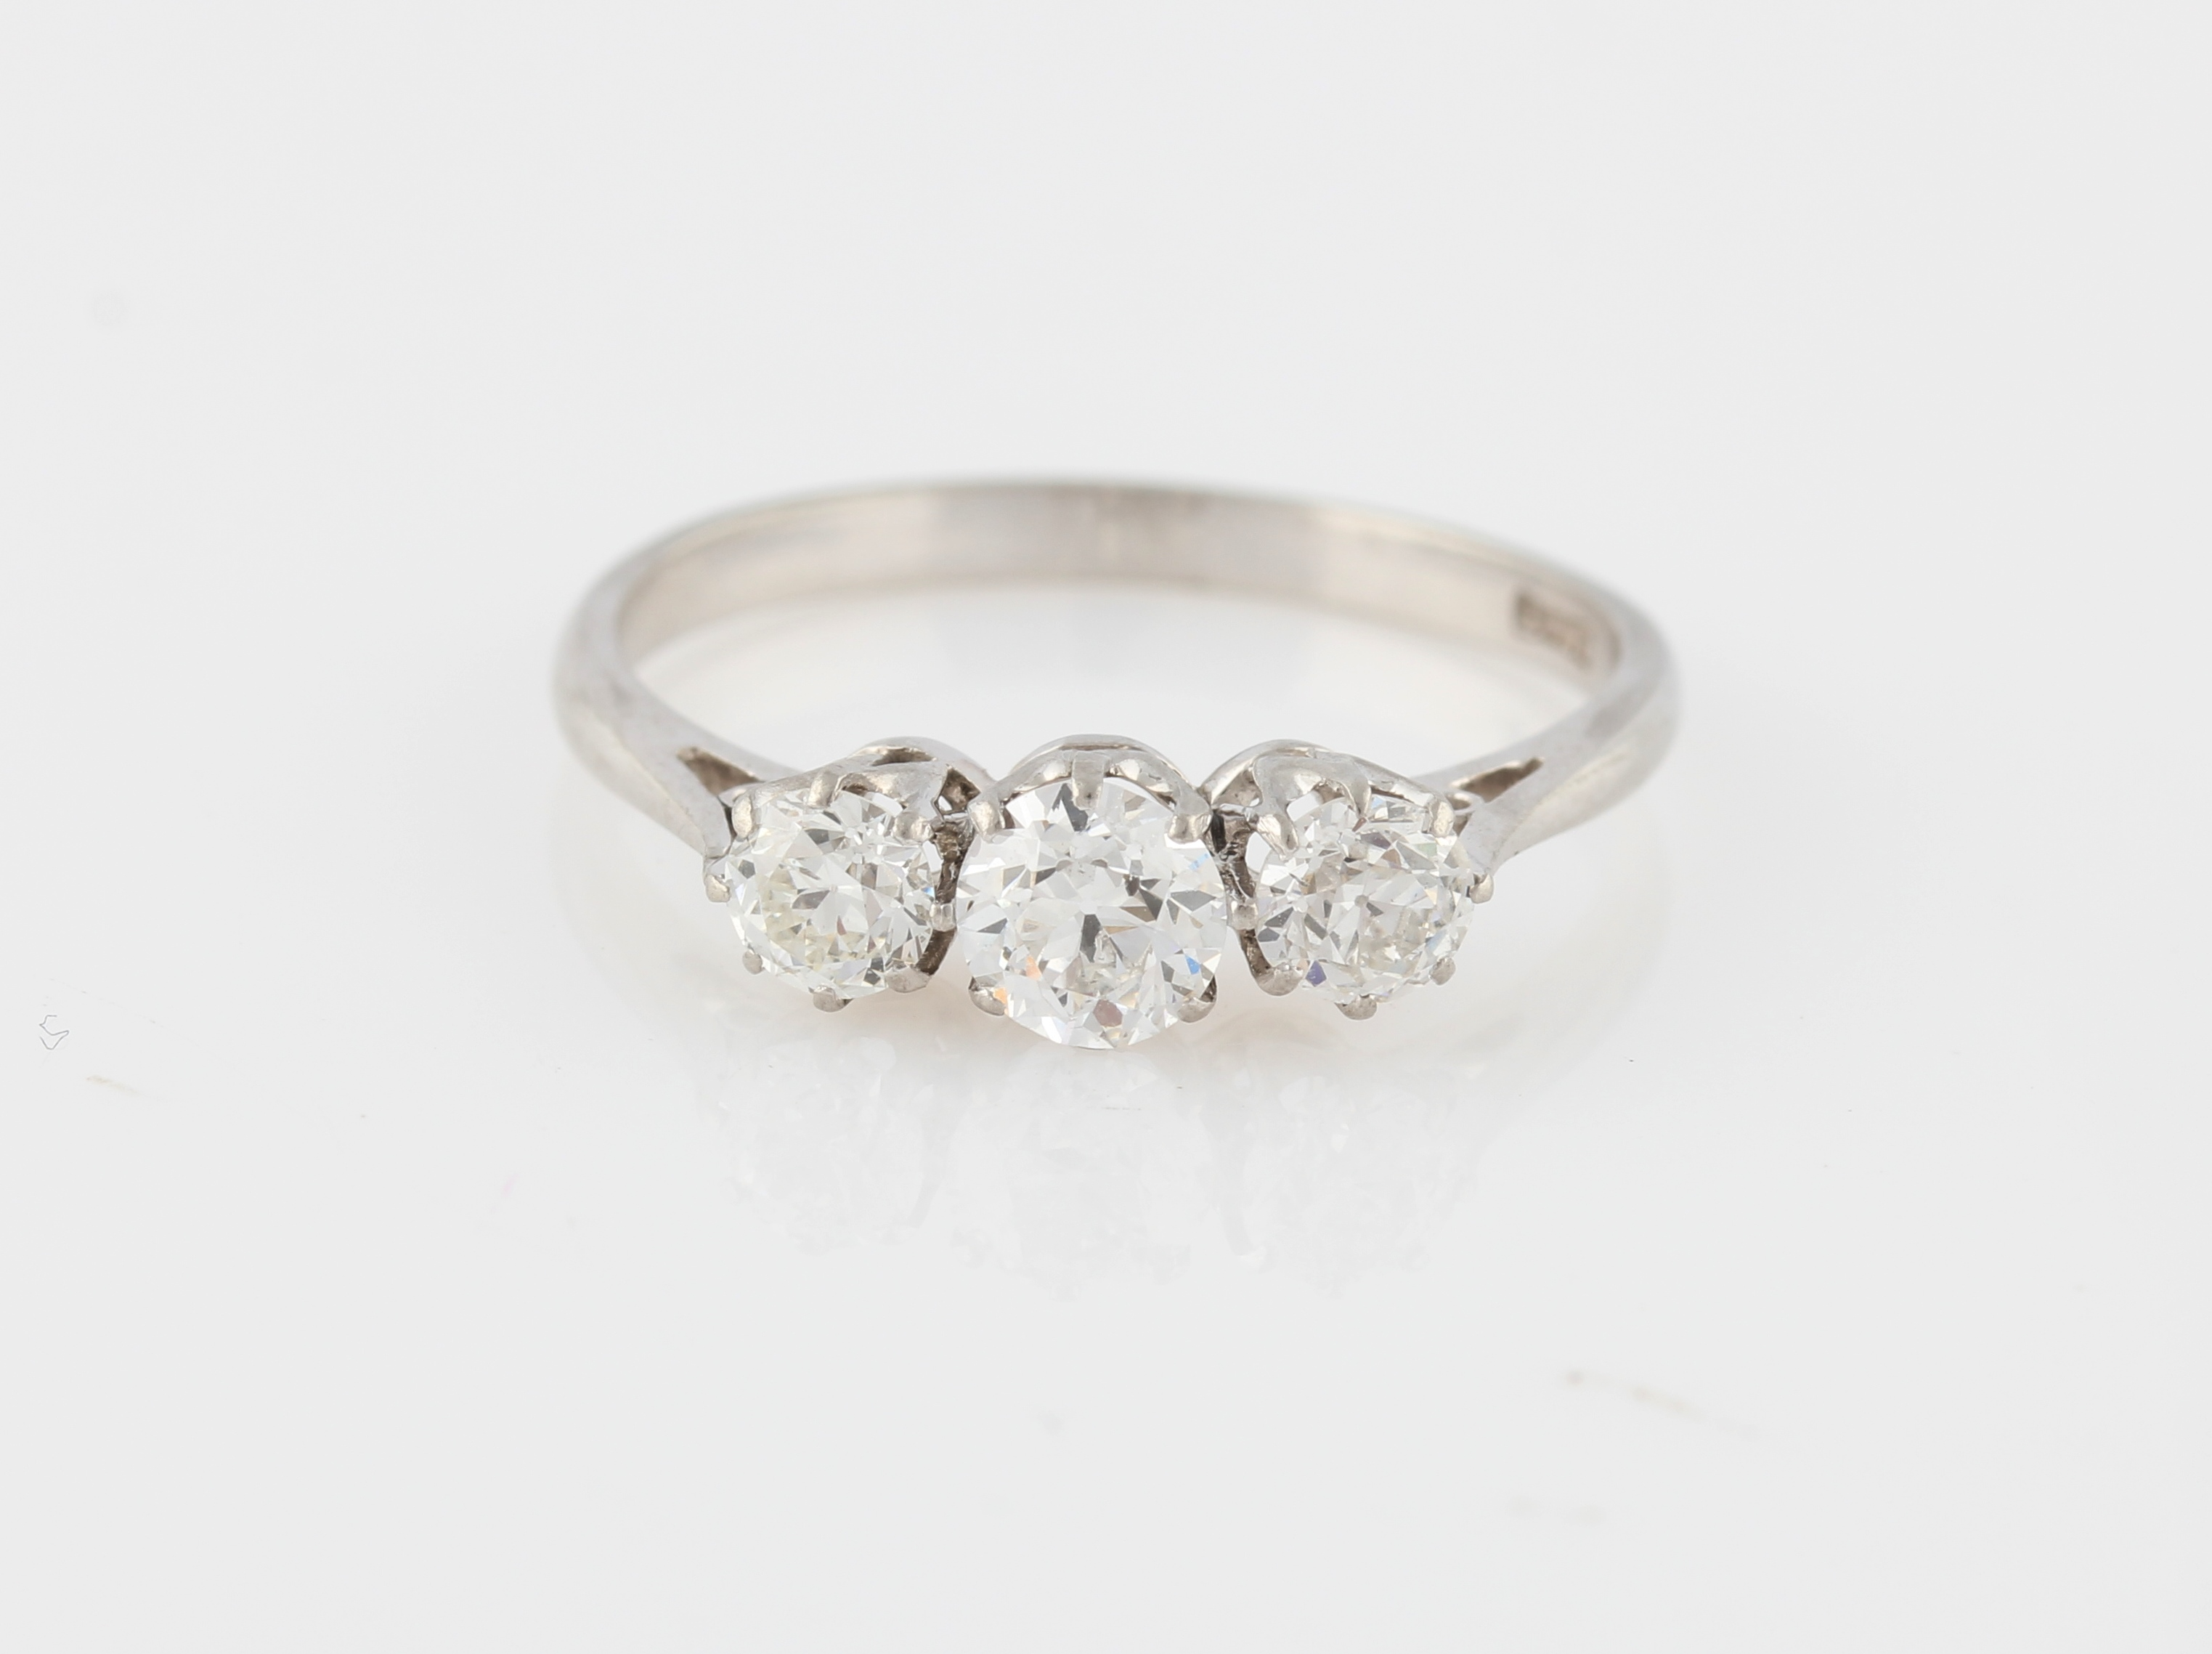 Lot 9 - A three stone diamond ring, set with three graduated old cut diamonds, total diamond weight